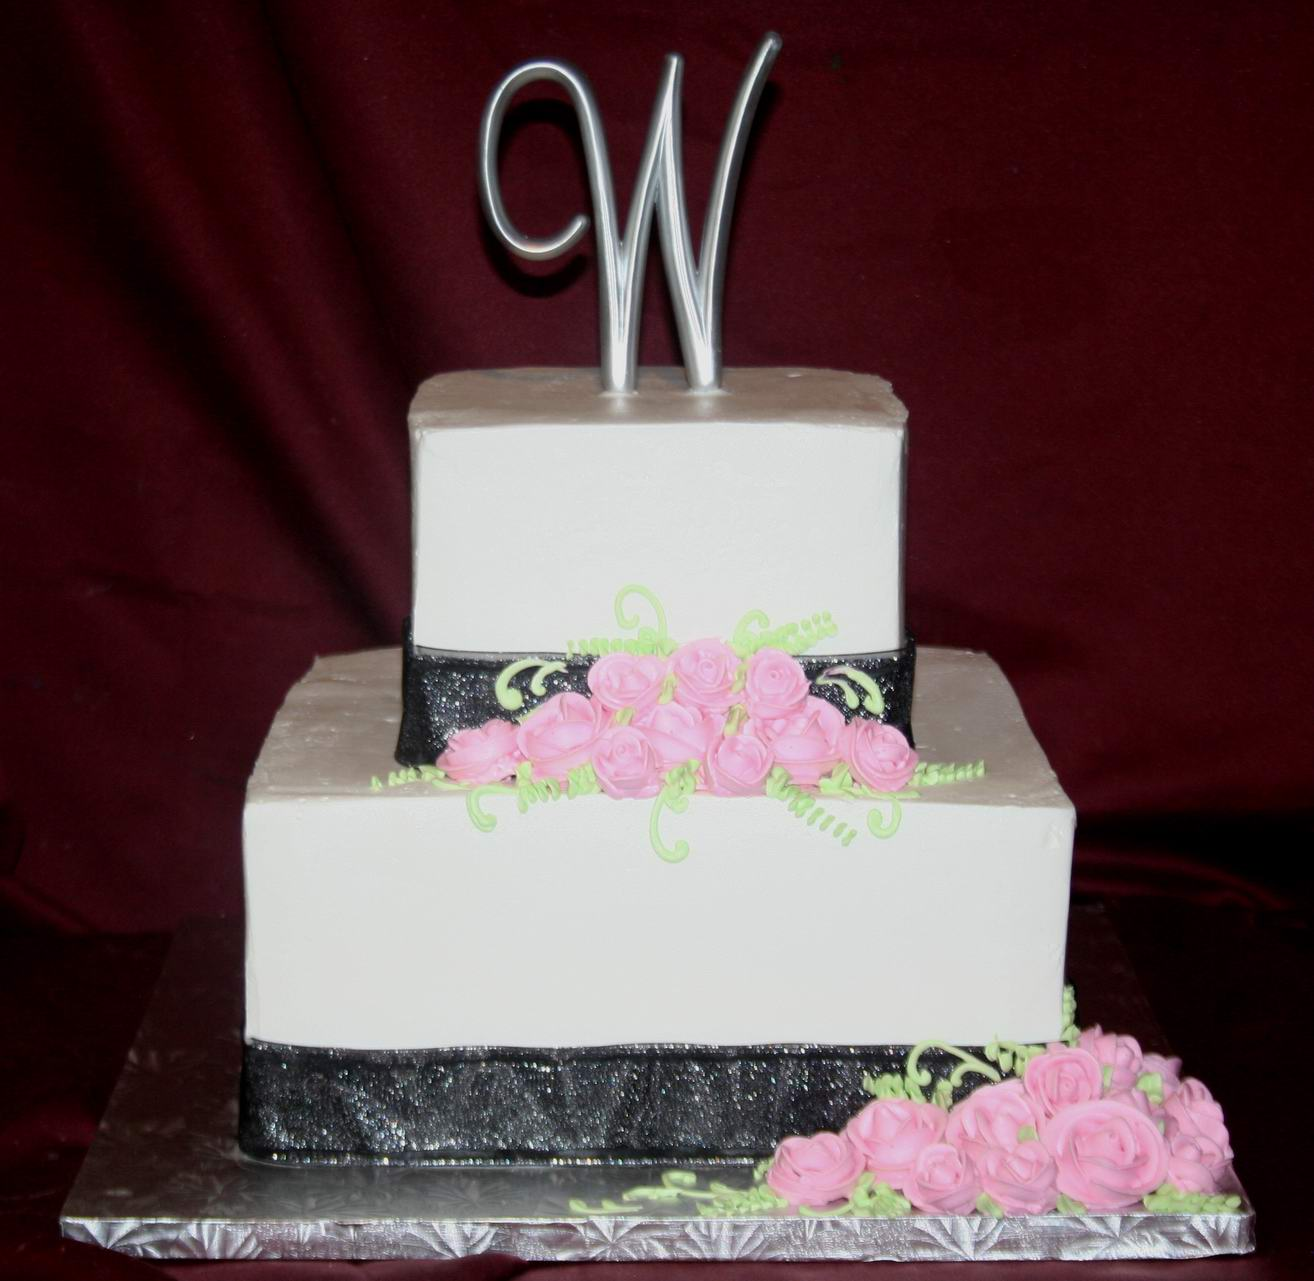 ABC Cake Shop And Bakery Lovely 3 Tier Square Wedding Cake